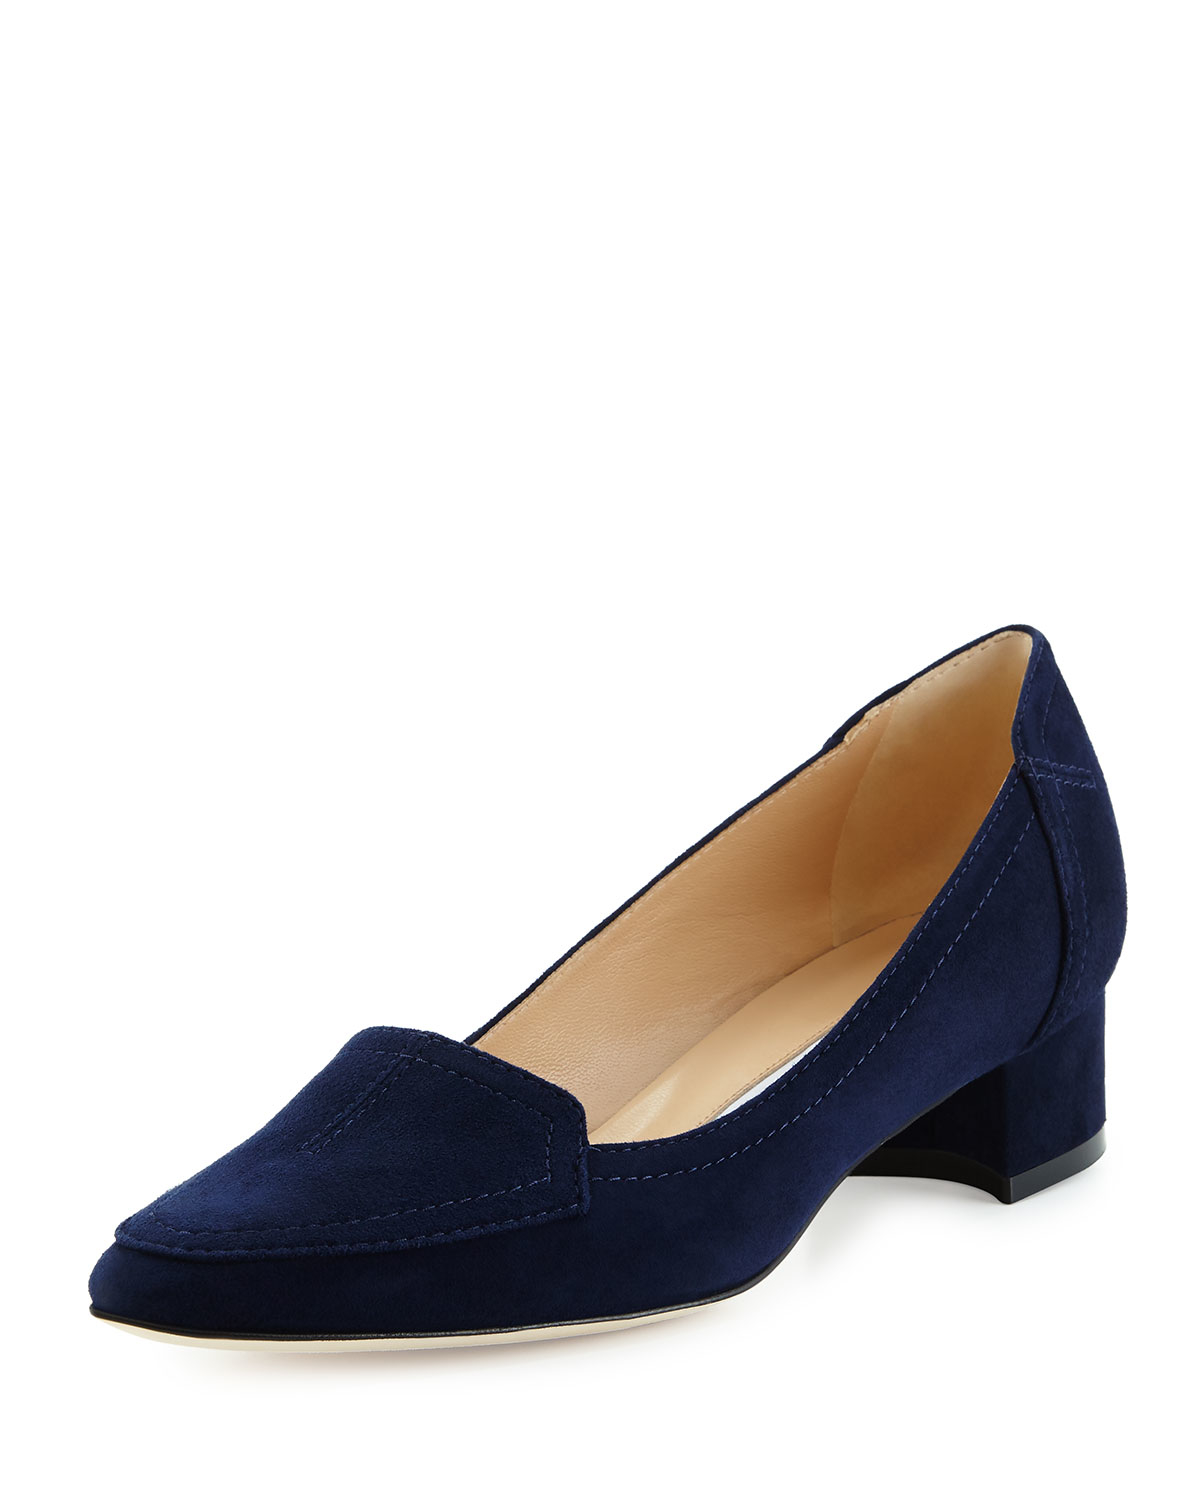 Lyst manolo blahnik carlisa suede loafers in blue for Who is manolo blahnik